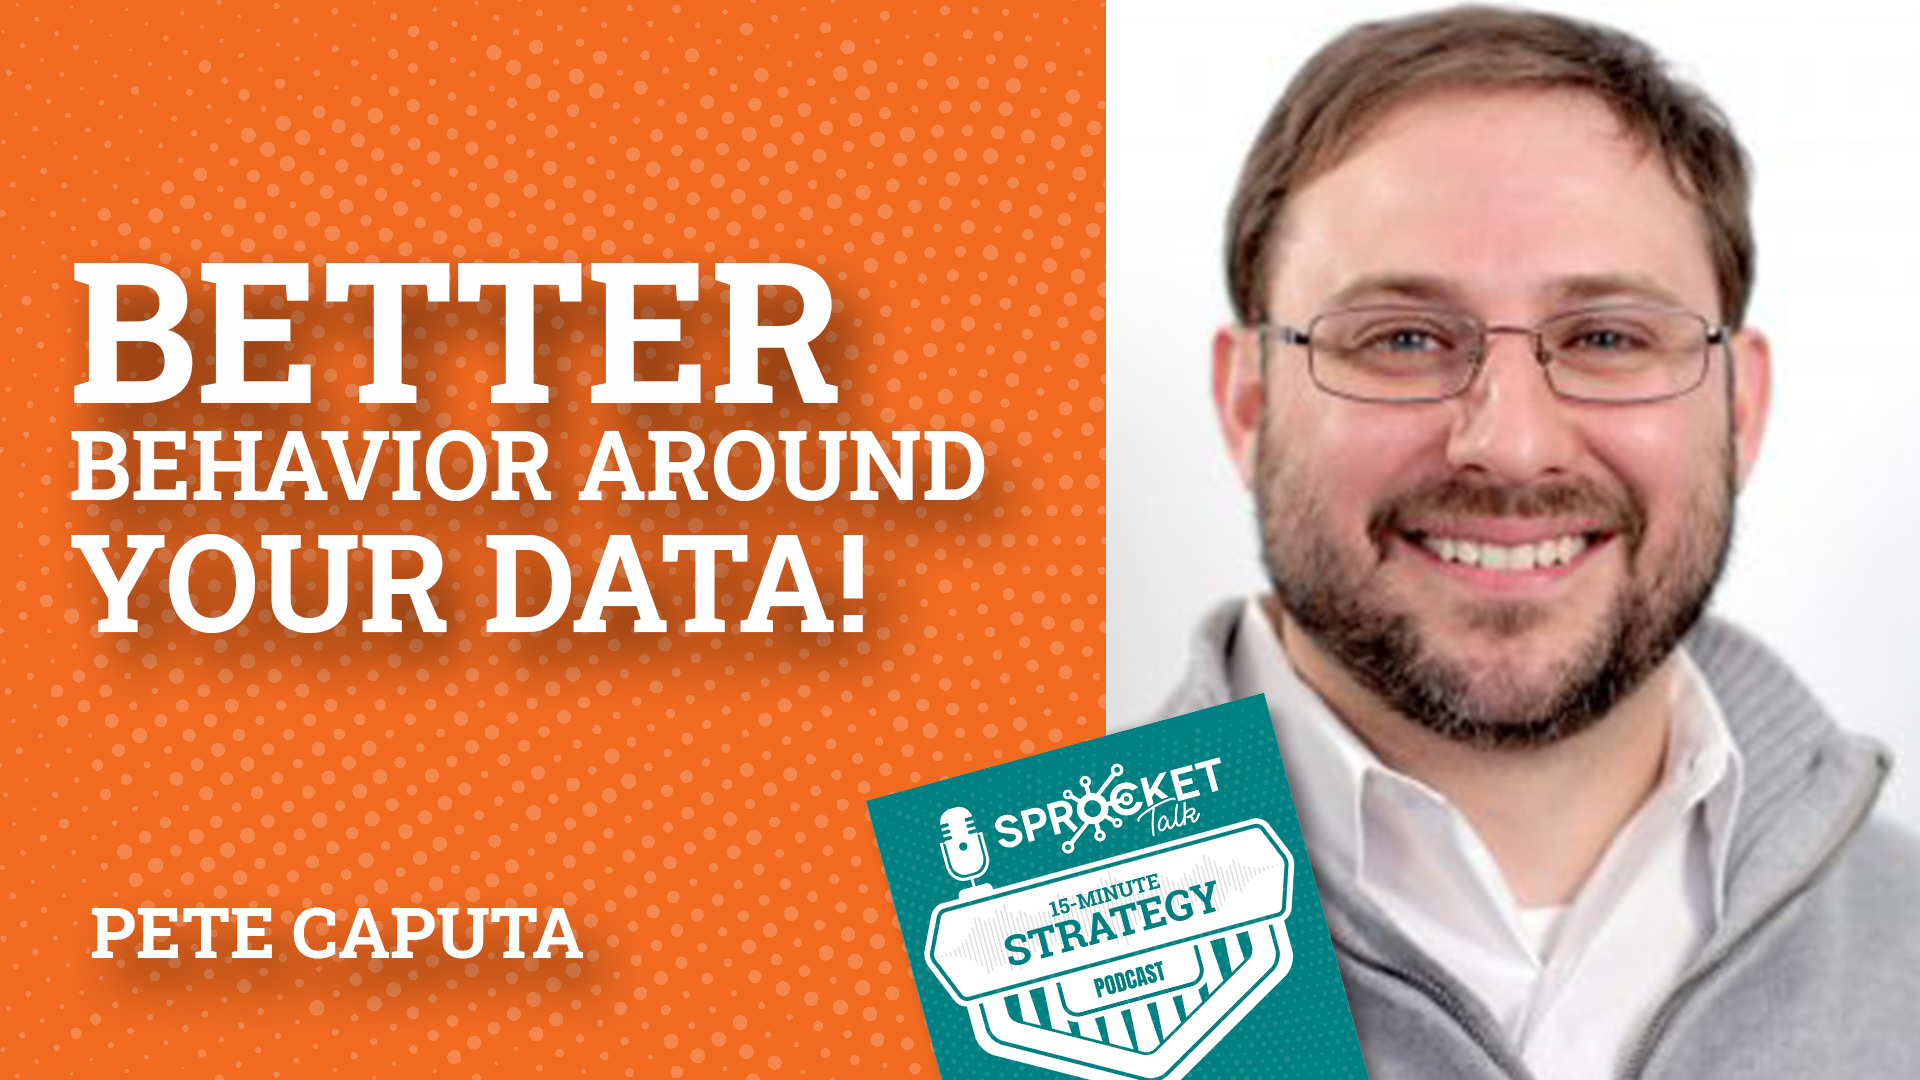 Pete Caputa: Better Behavior Around Your Data